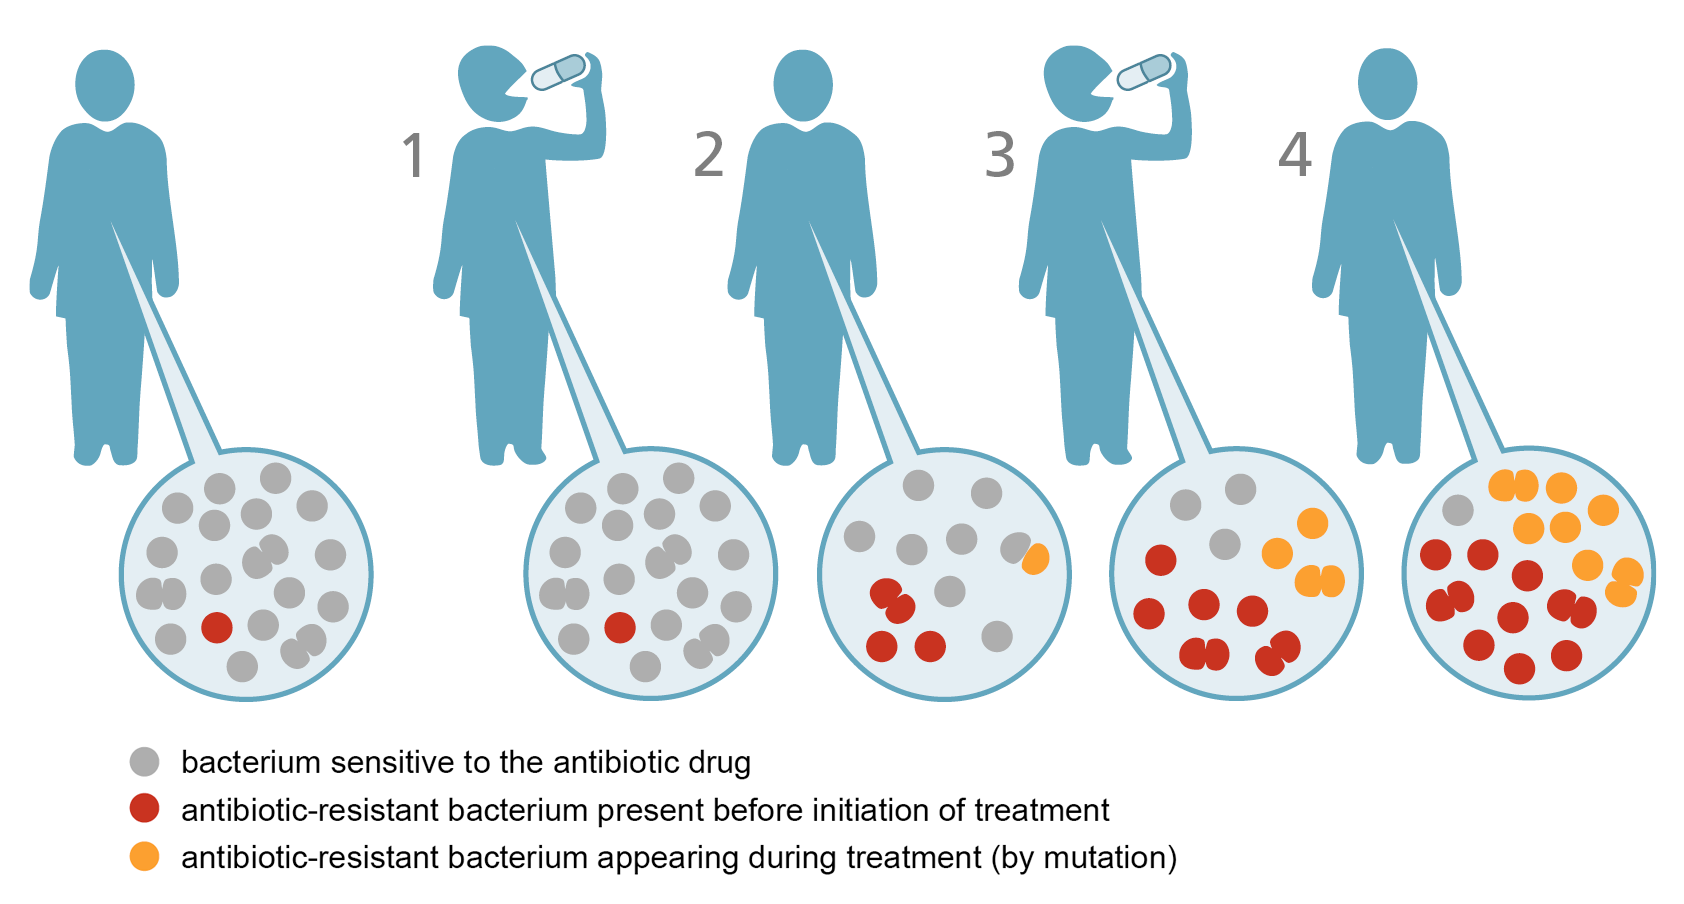 Evolution of antibiotic resistancy